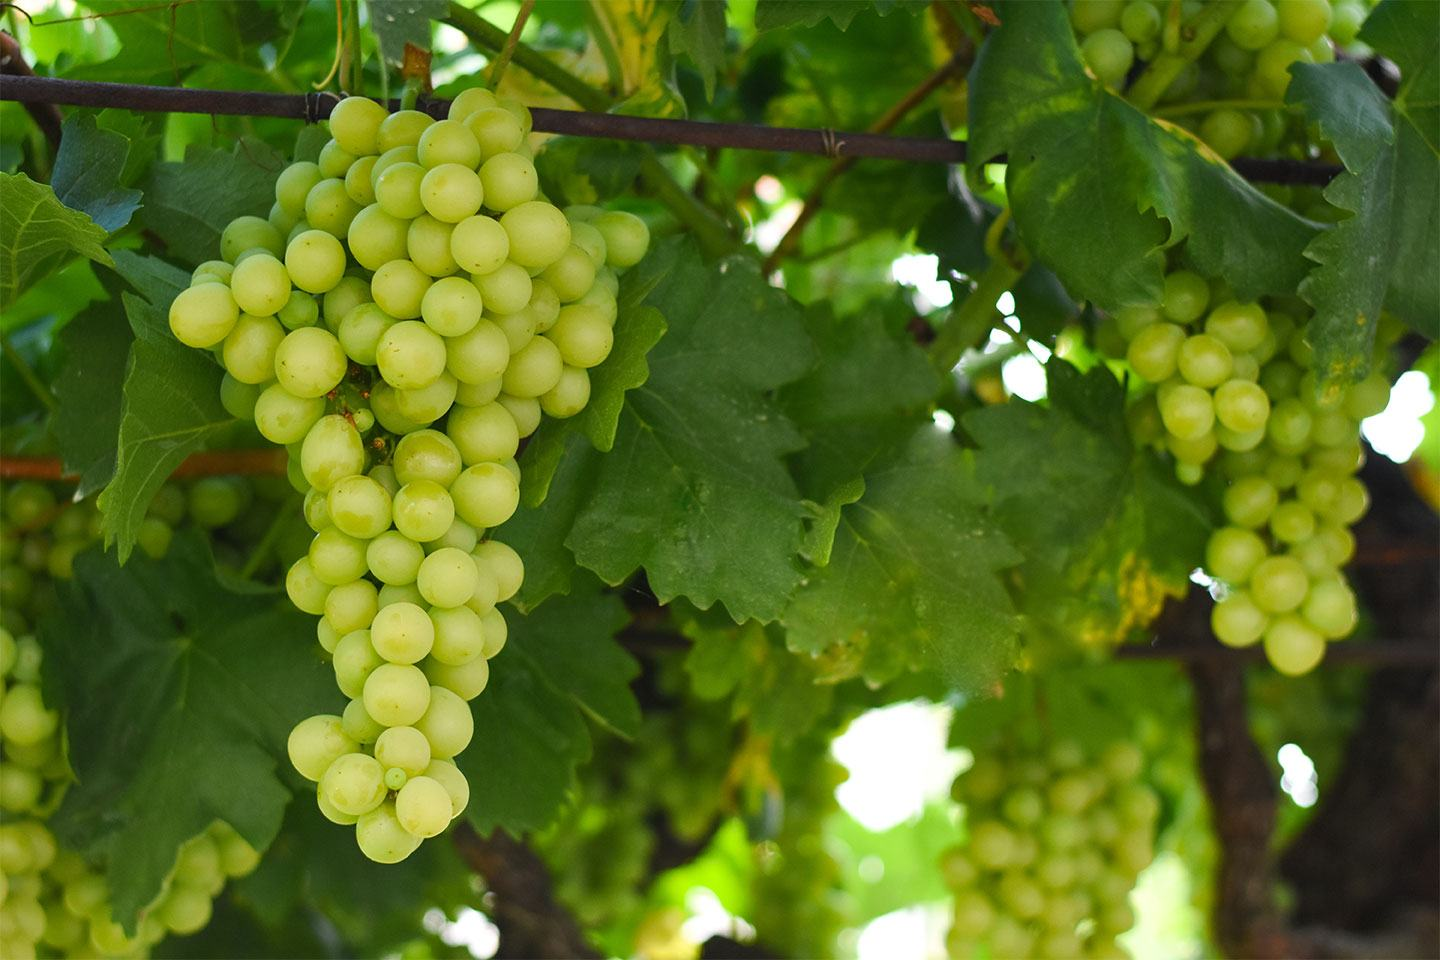 FMC Good to Grow grapevine trunk disease